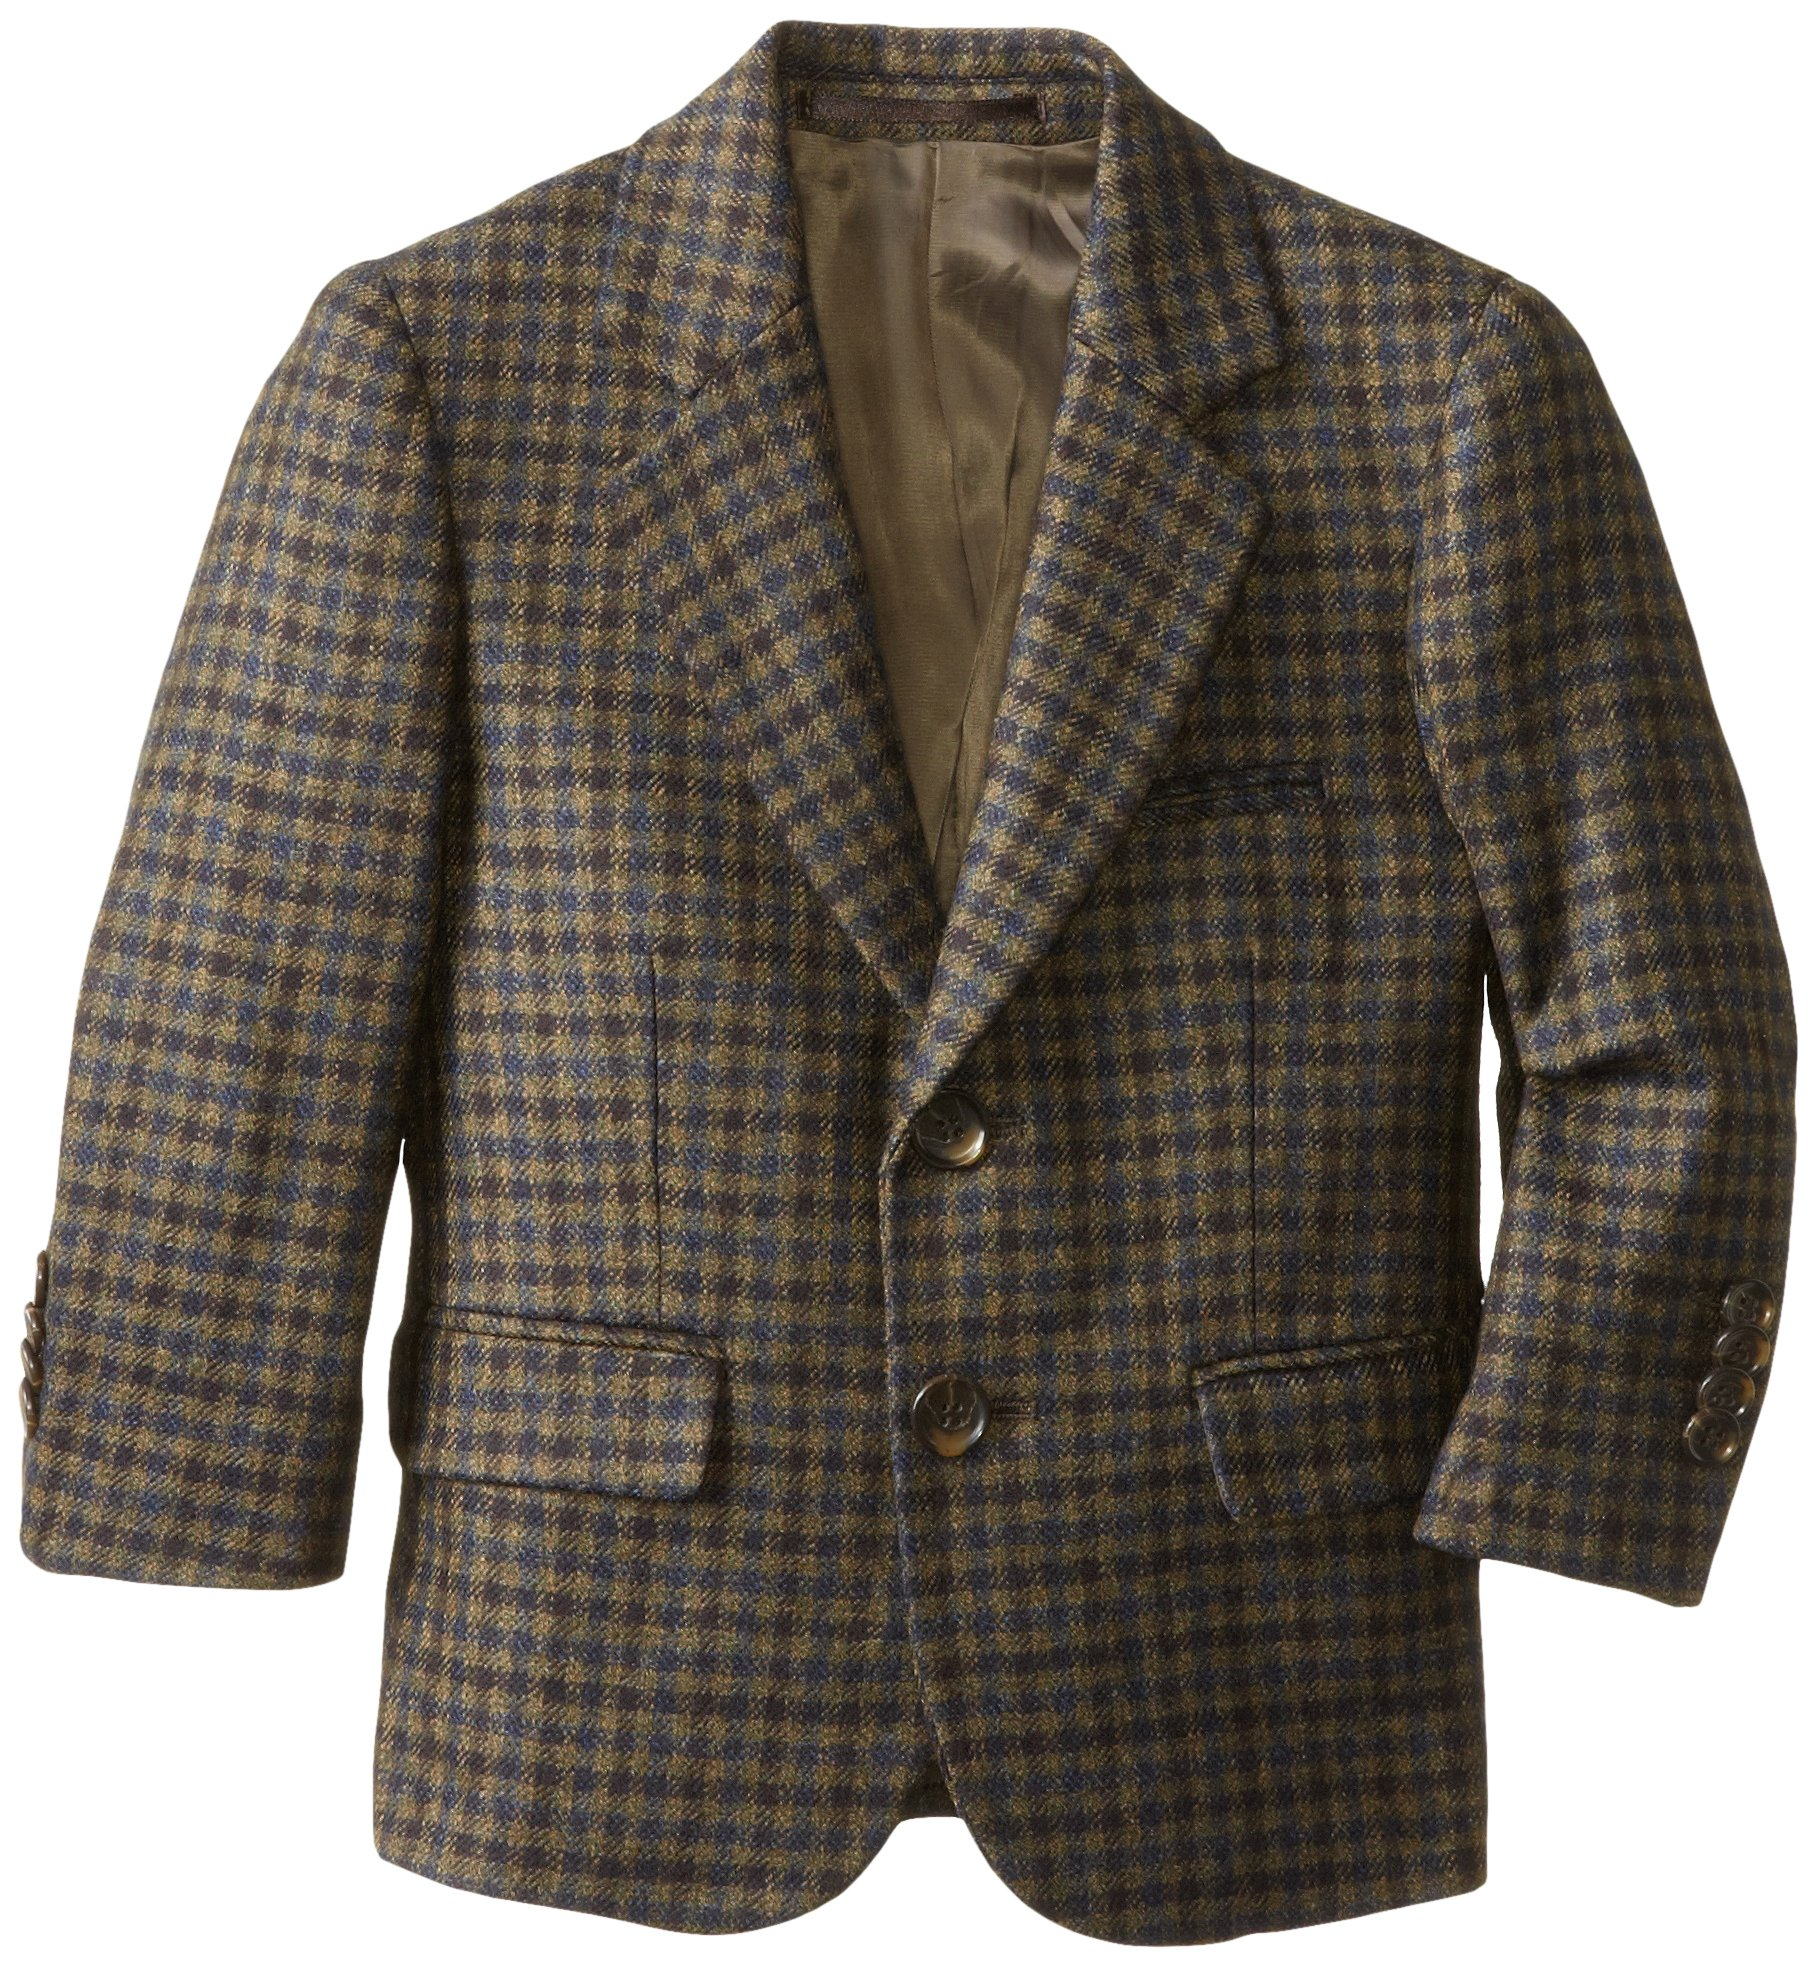 Isaac Mizrahi Black Label Little Boys' Little Pure Wool Multi-Check Blazer, Olive, 3 by Isaac Mizrahi